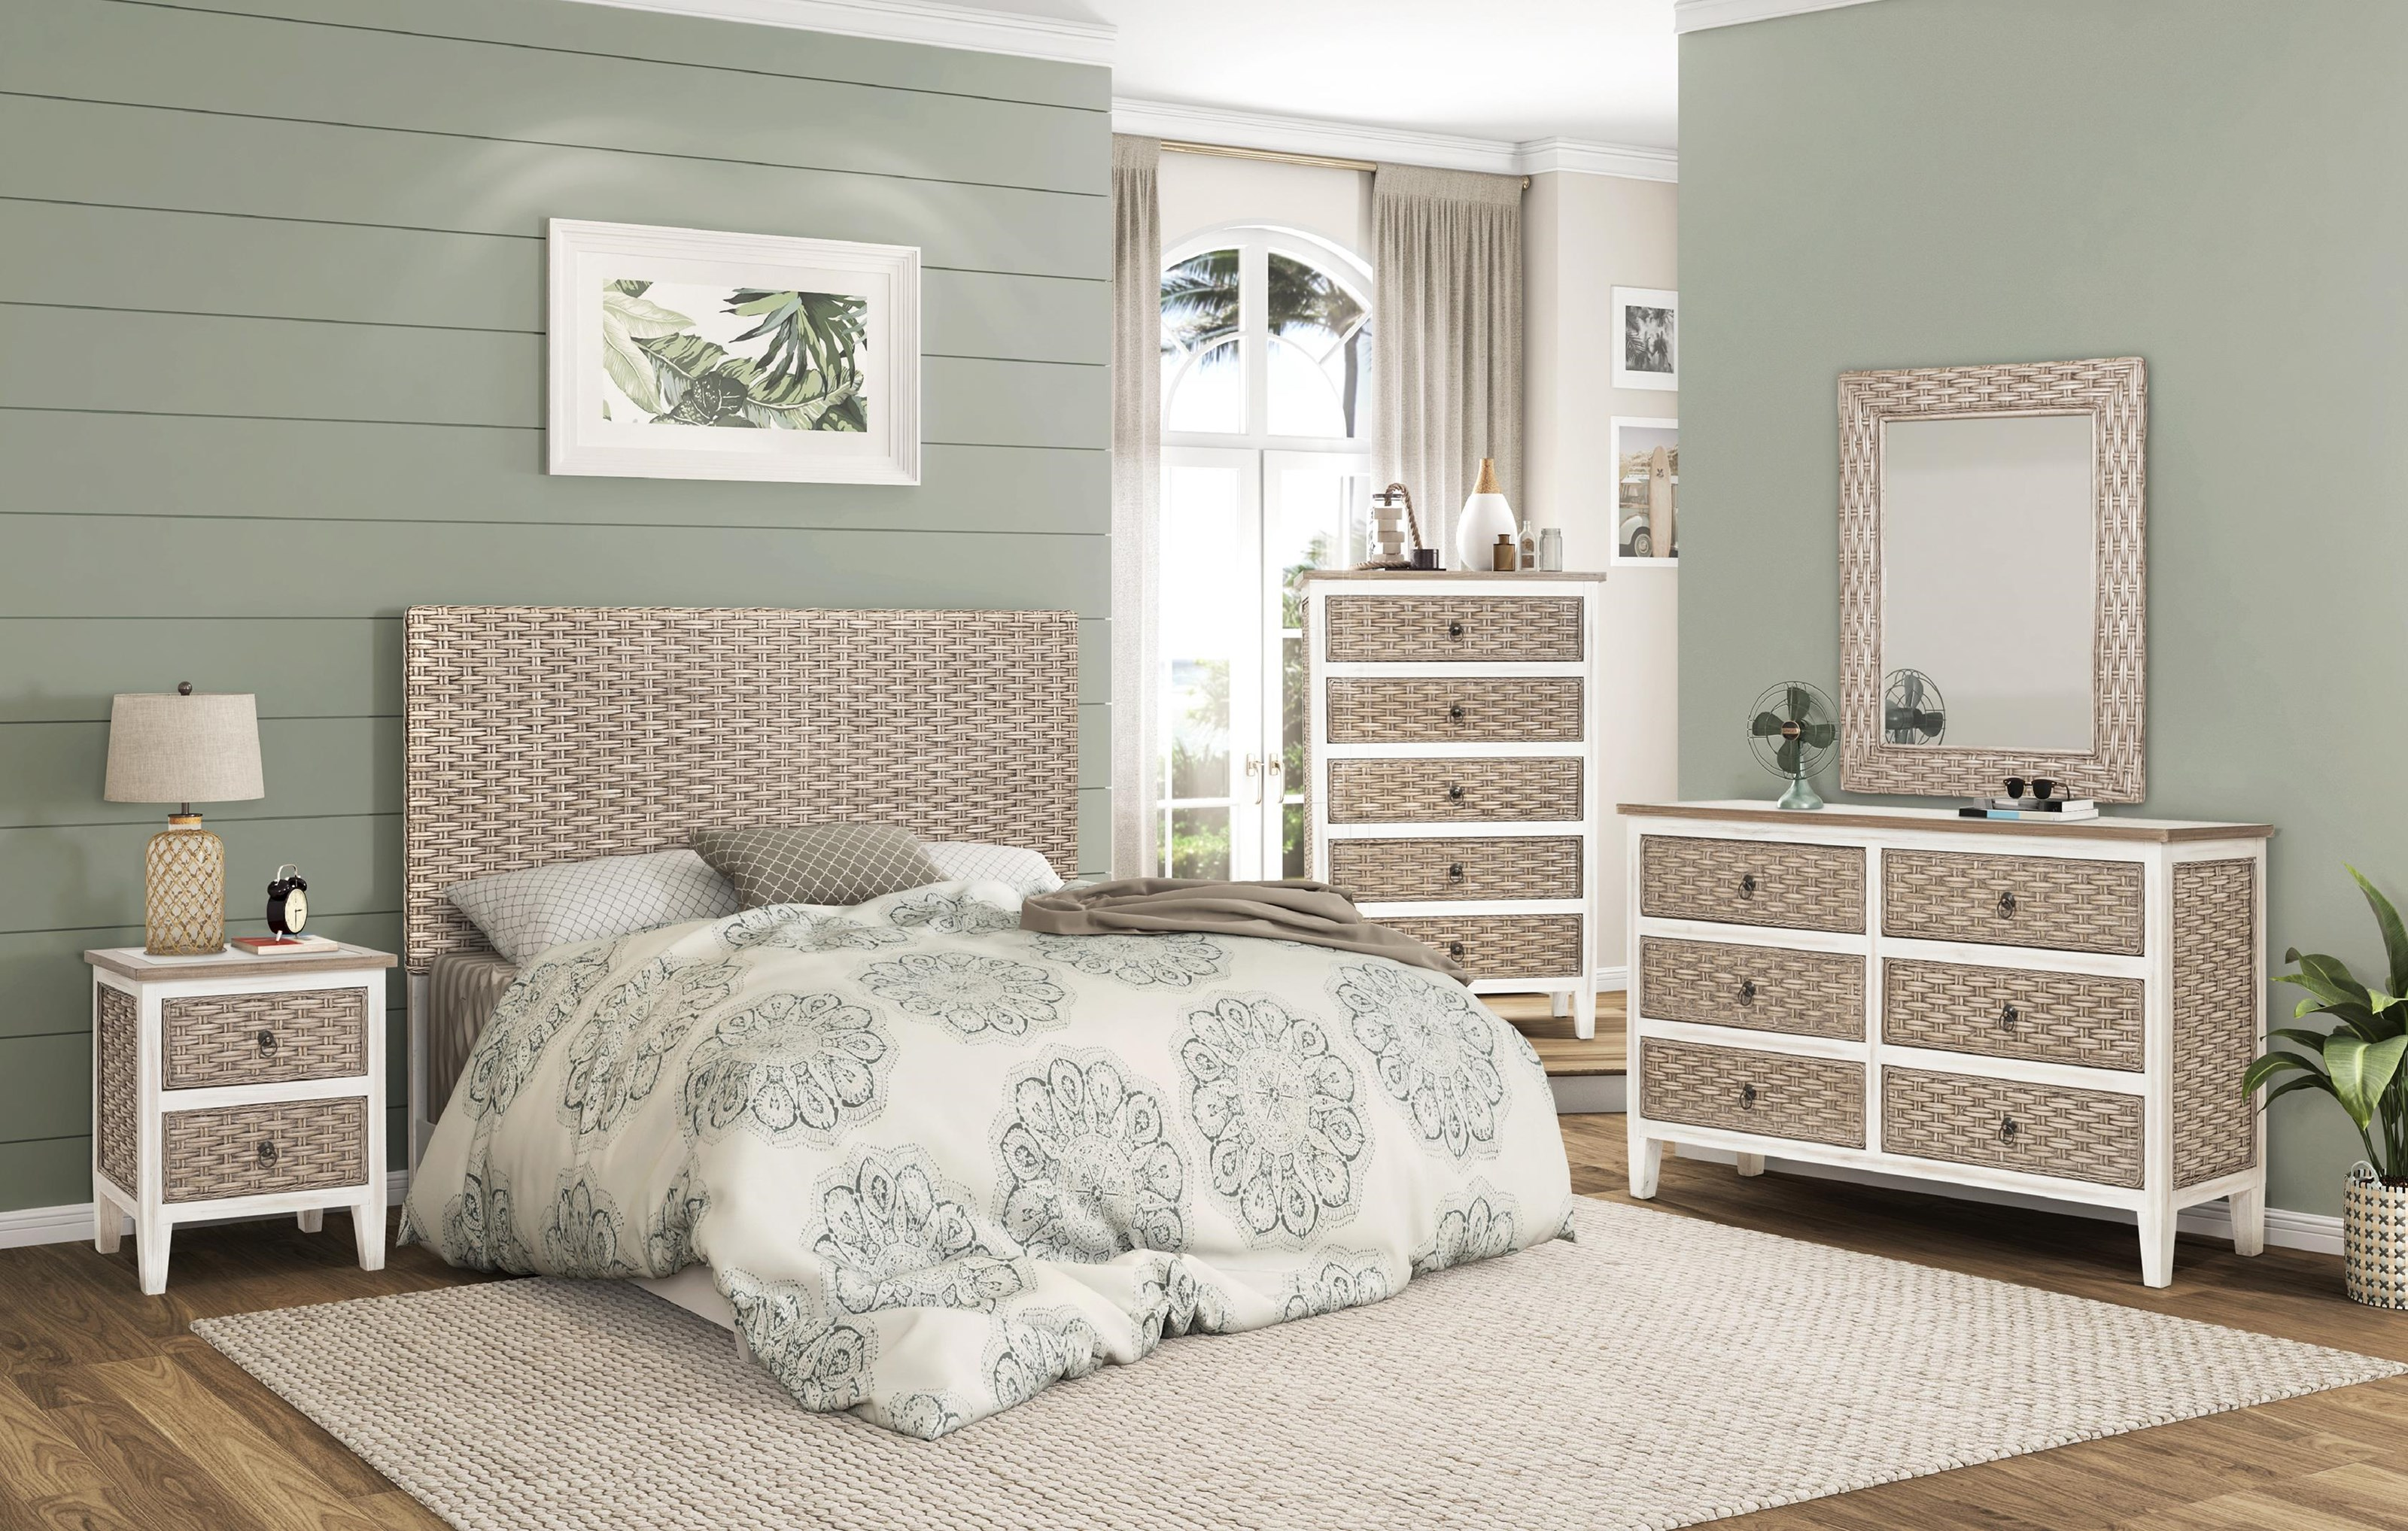 sea breeze King bedroom group by Sea Winds Trading Company at Johnny Janosik